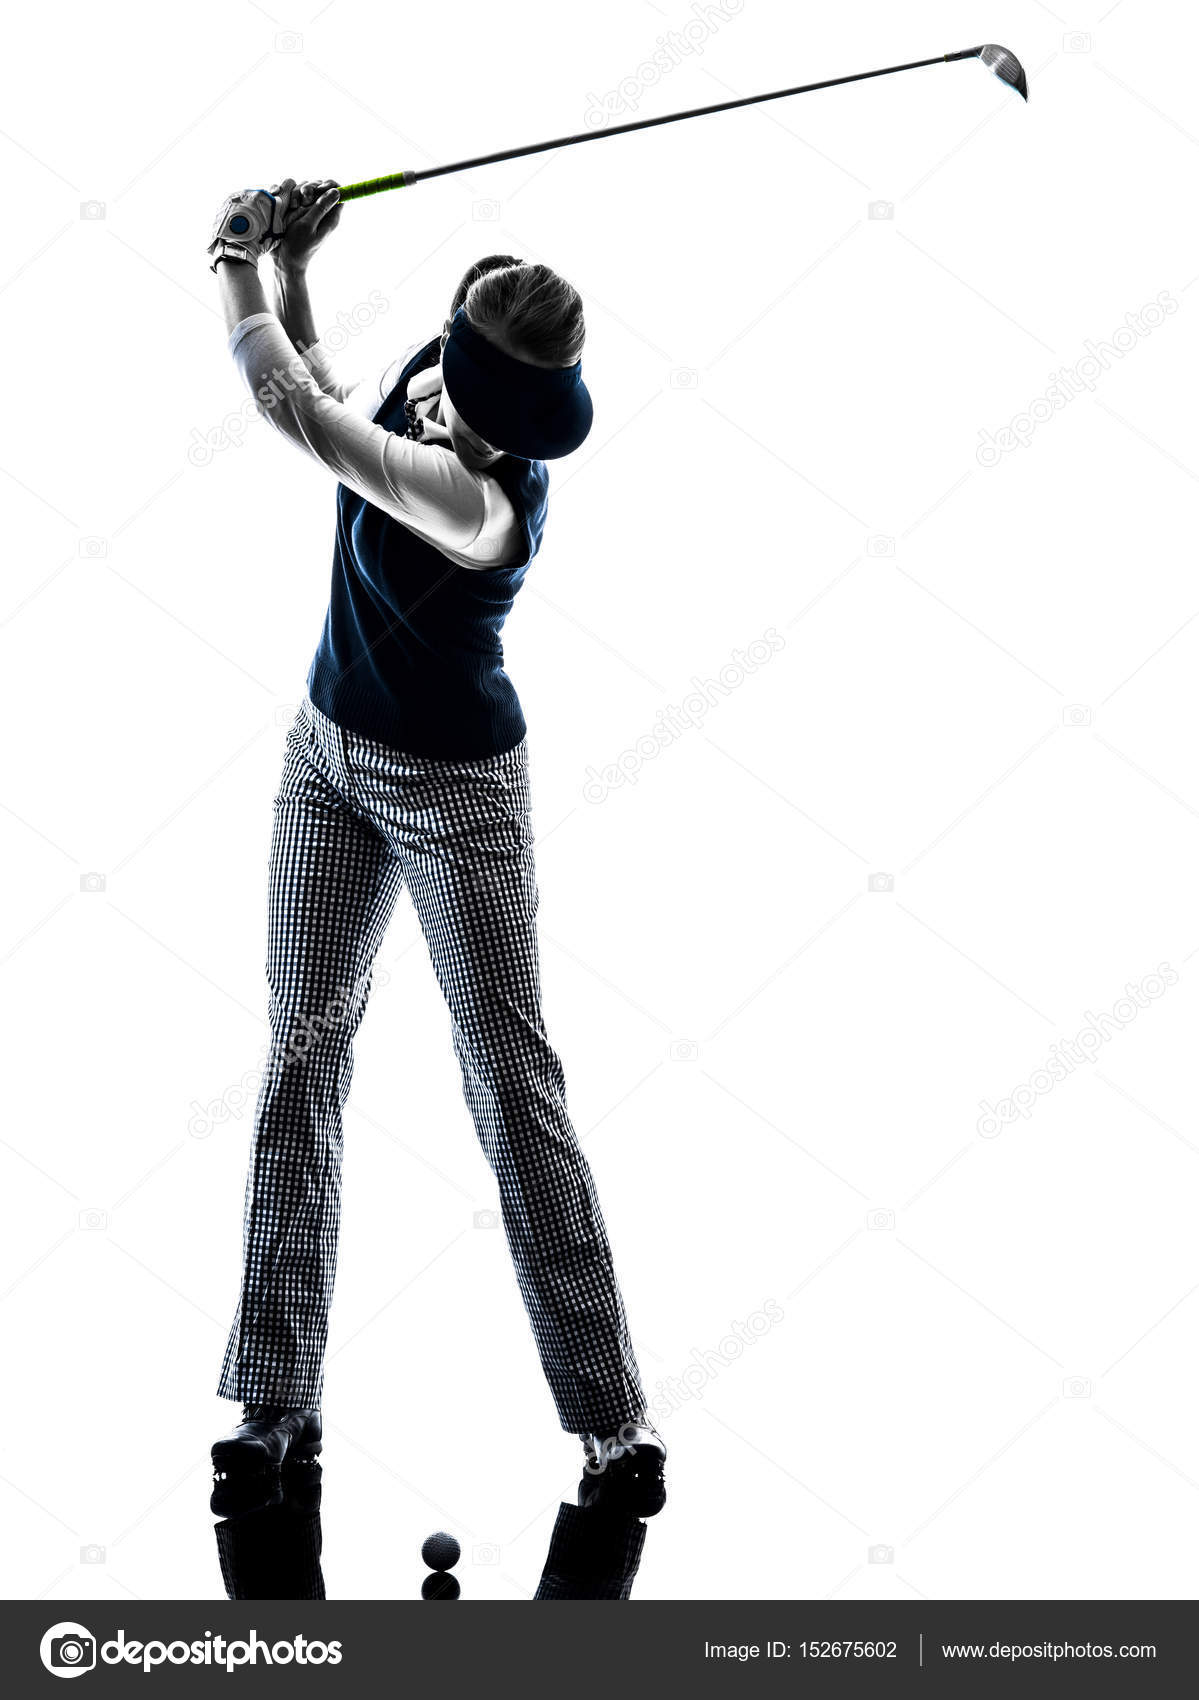 Woman Golfer Golfing Silhouette Stock Photo C Stylepics 152675602